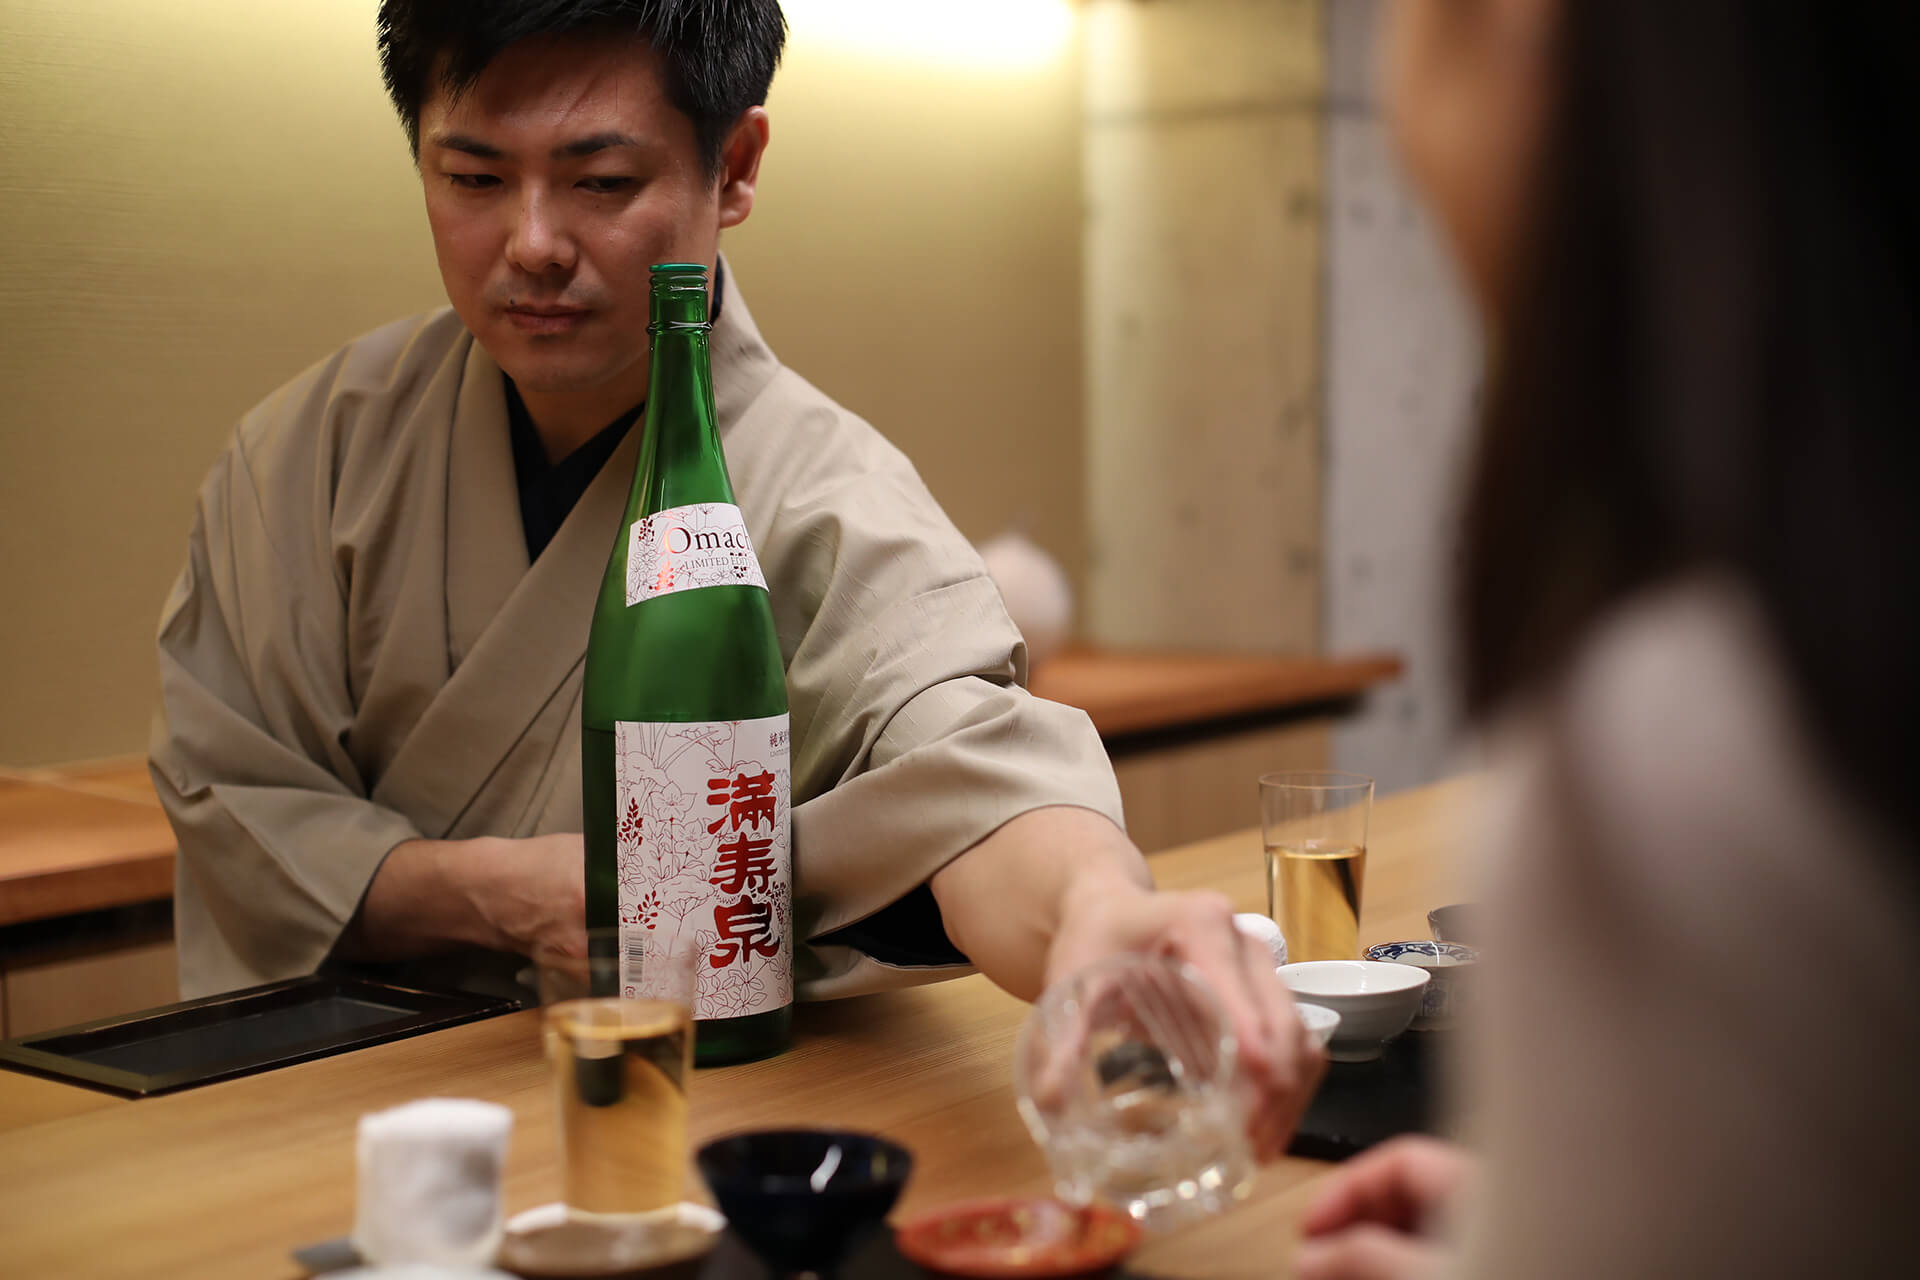 AT FUKUISHO, A KIKISAKESHI CAN OFFER PERFECT SAKE-PAIRING FOR THE KAISEKI CUISINE AND THE ATMOSPHERE